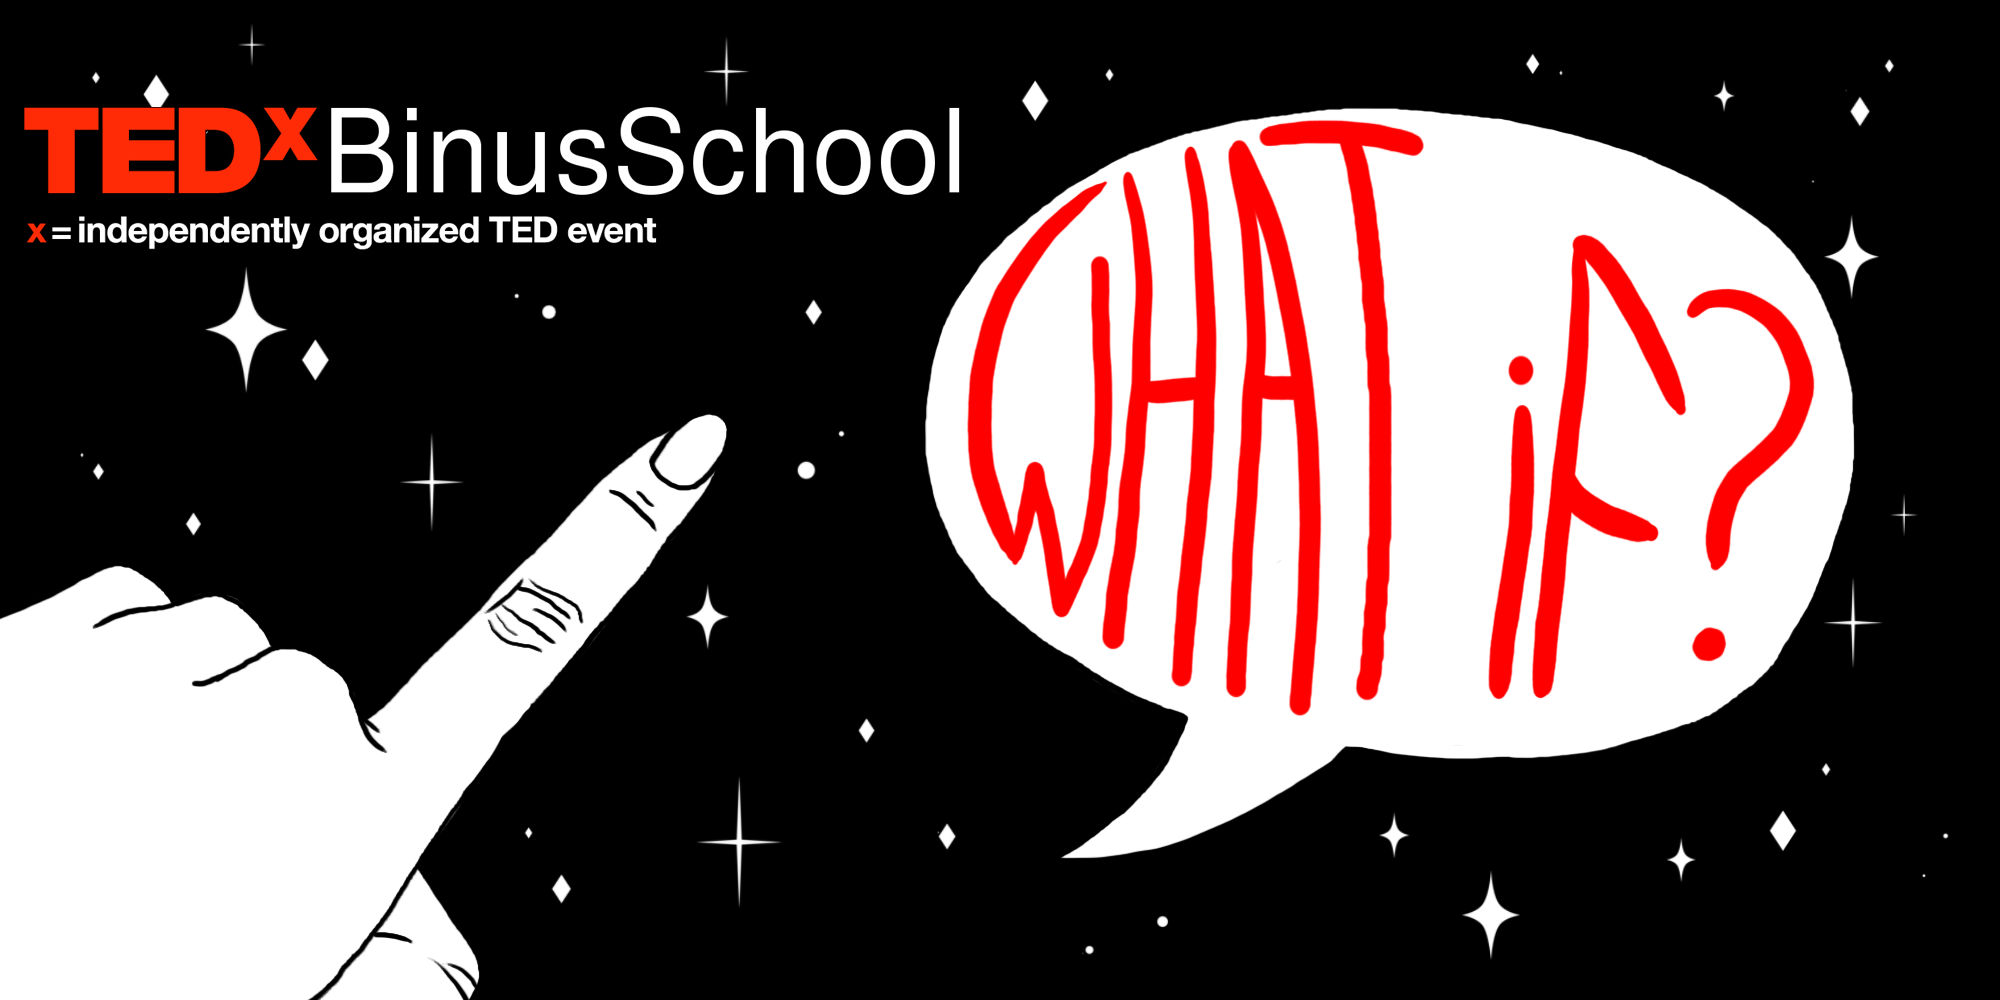 What If You Looked At The Other Side?   Audrey Wardana   TEDxBinusSchool